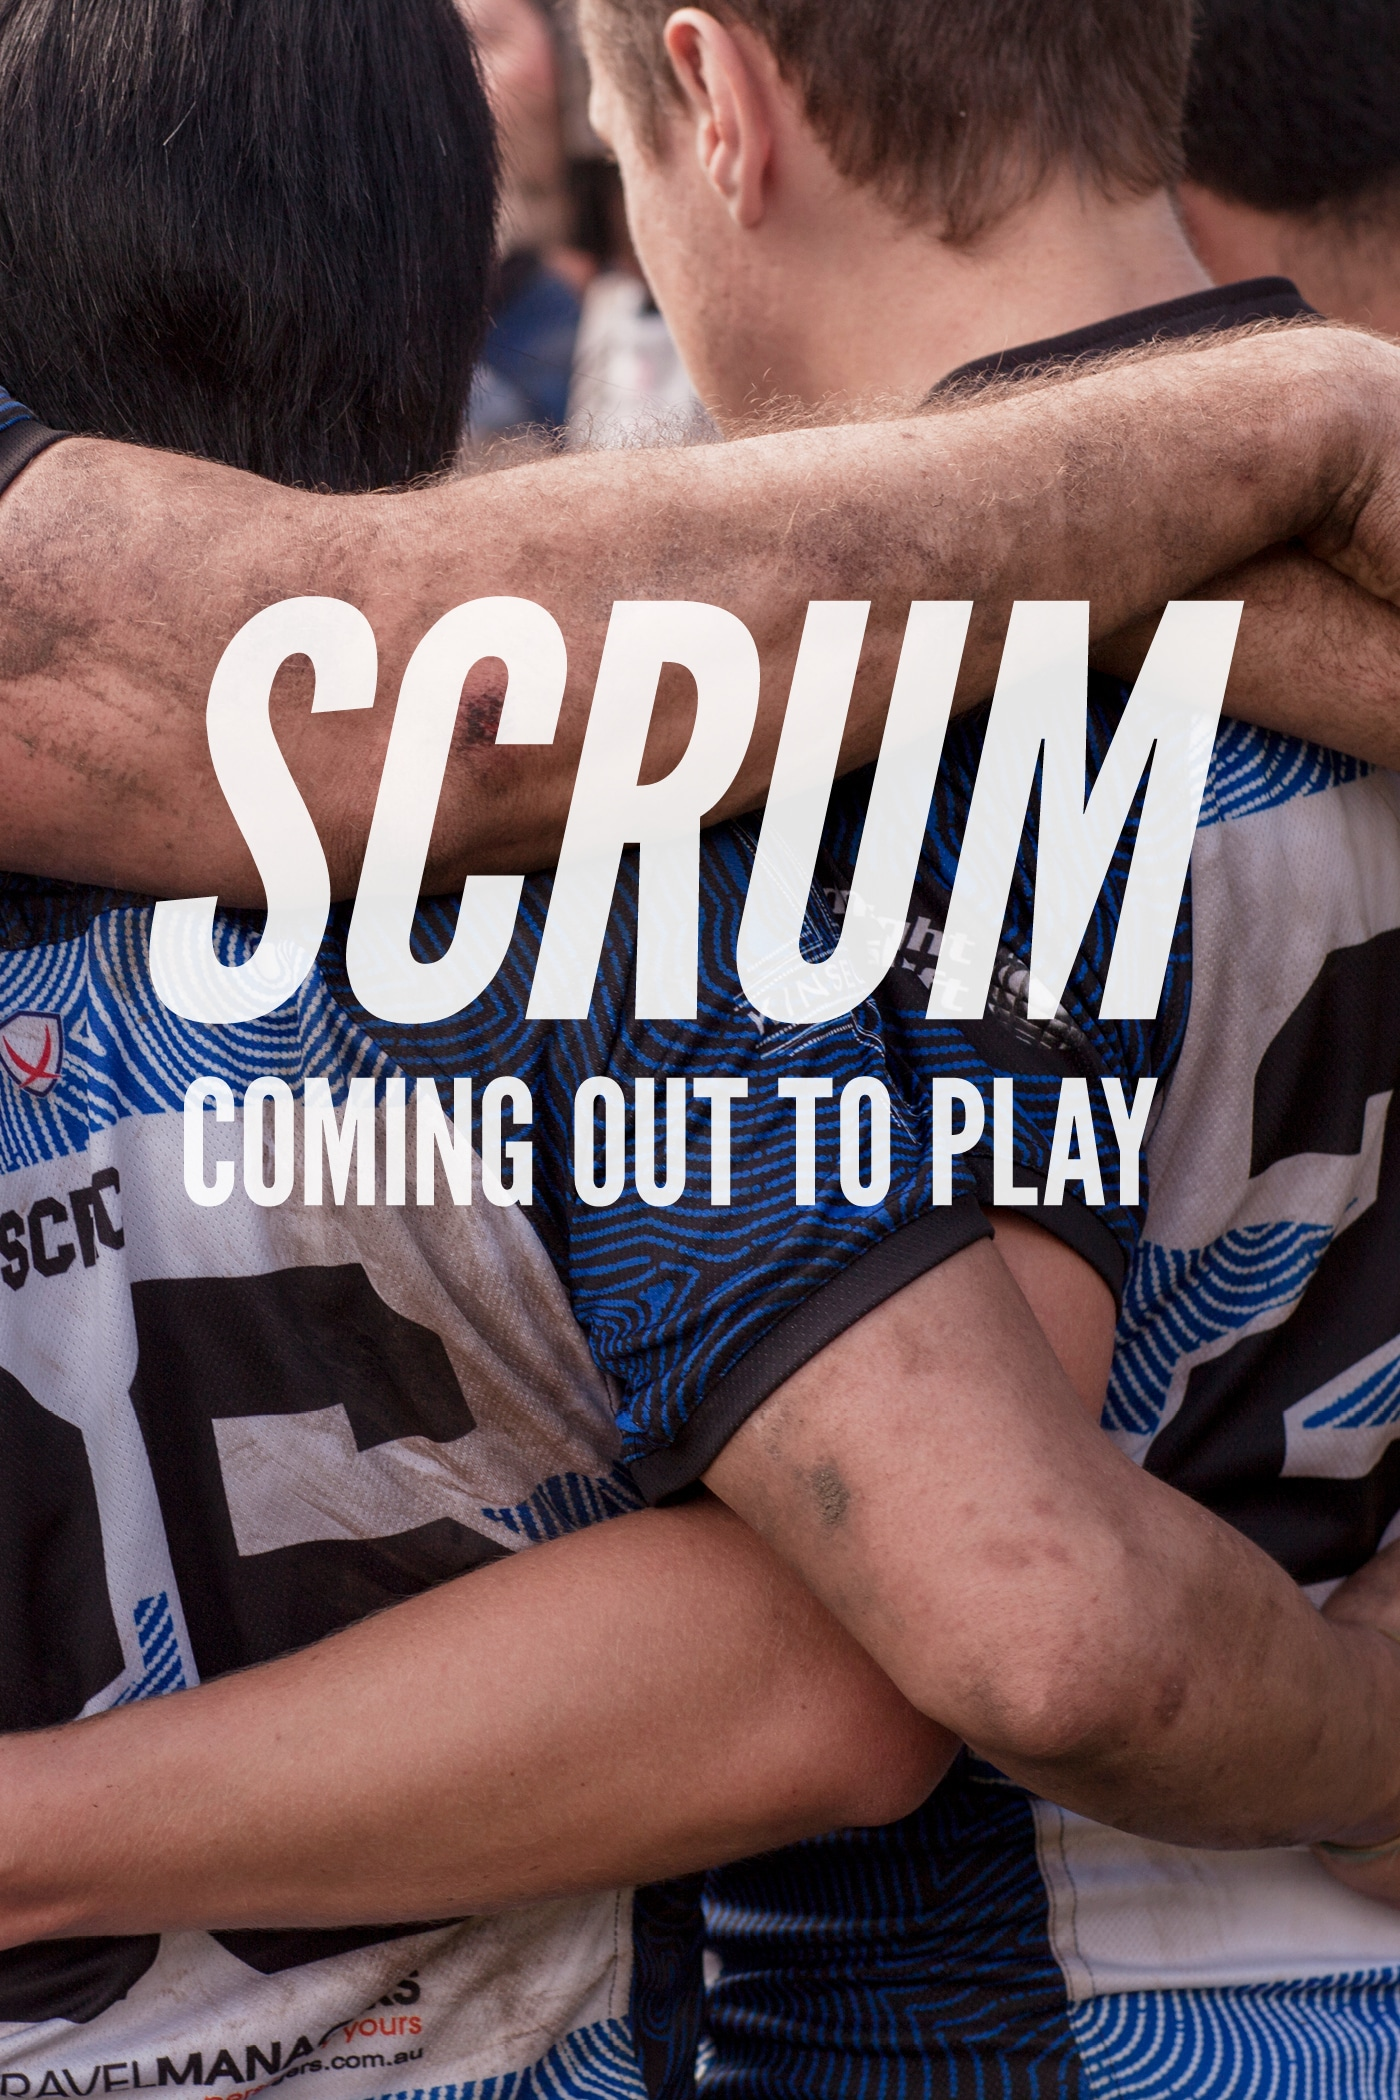 Scrum: Coming Out to Play